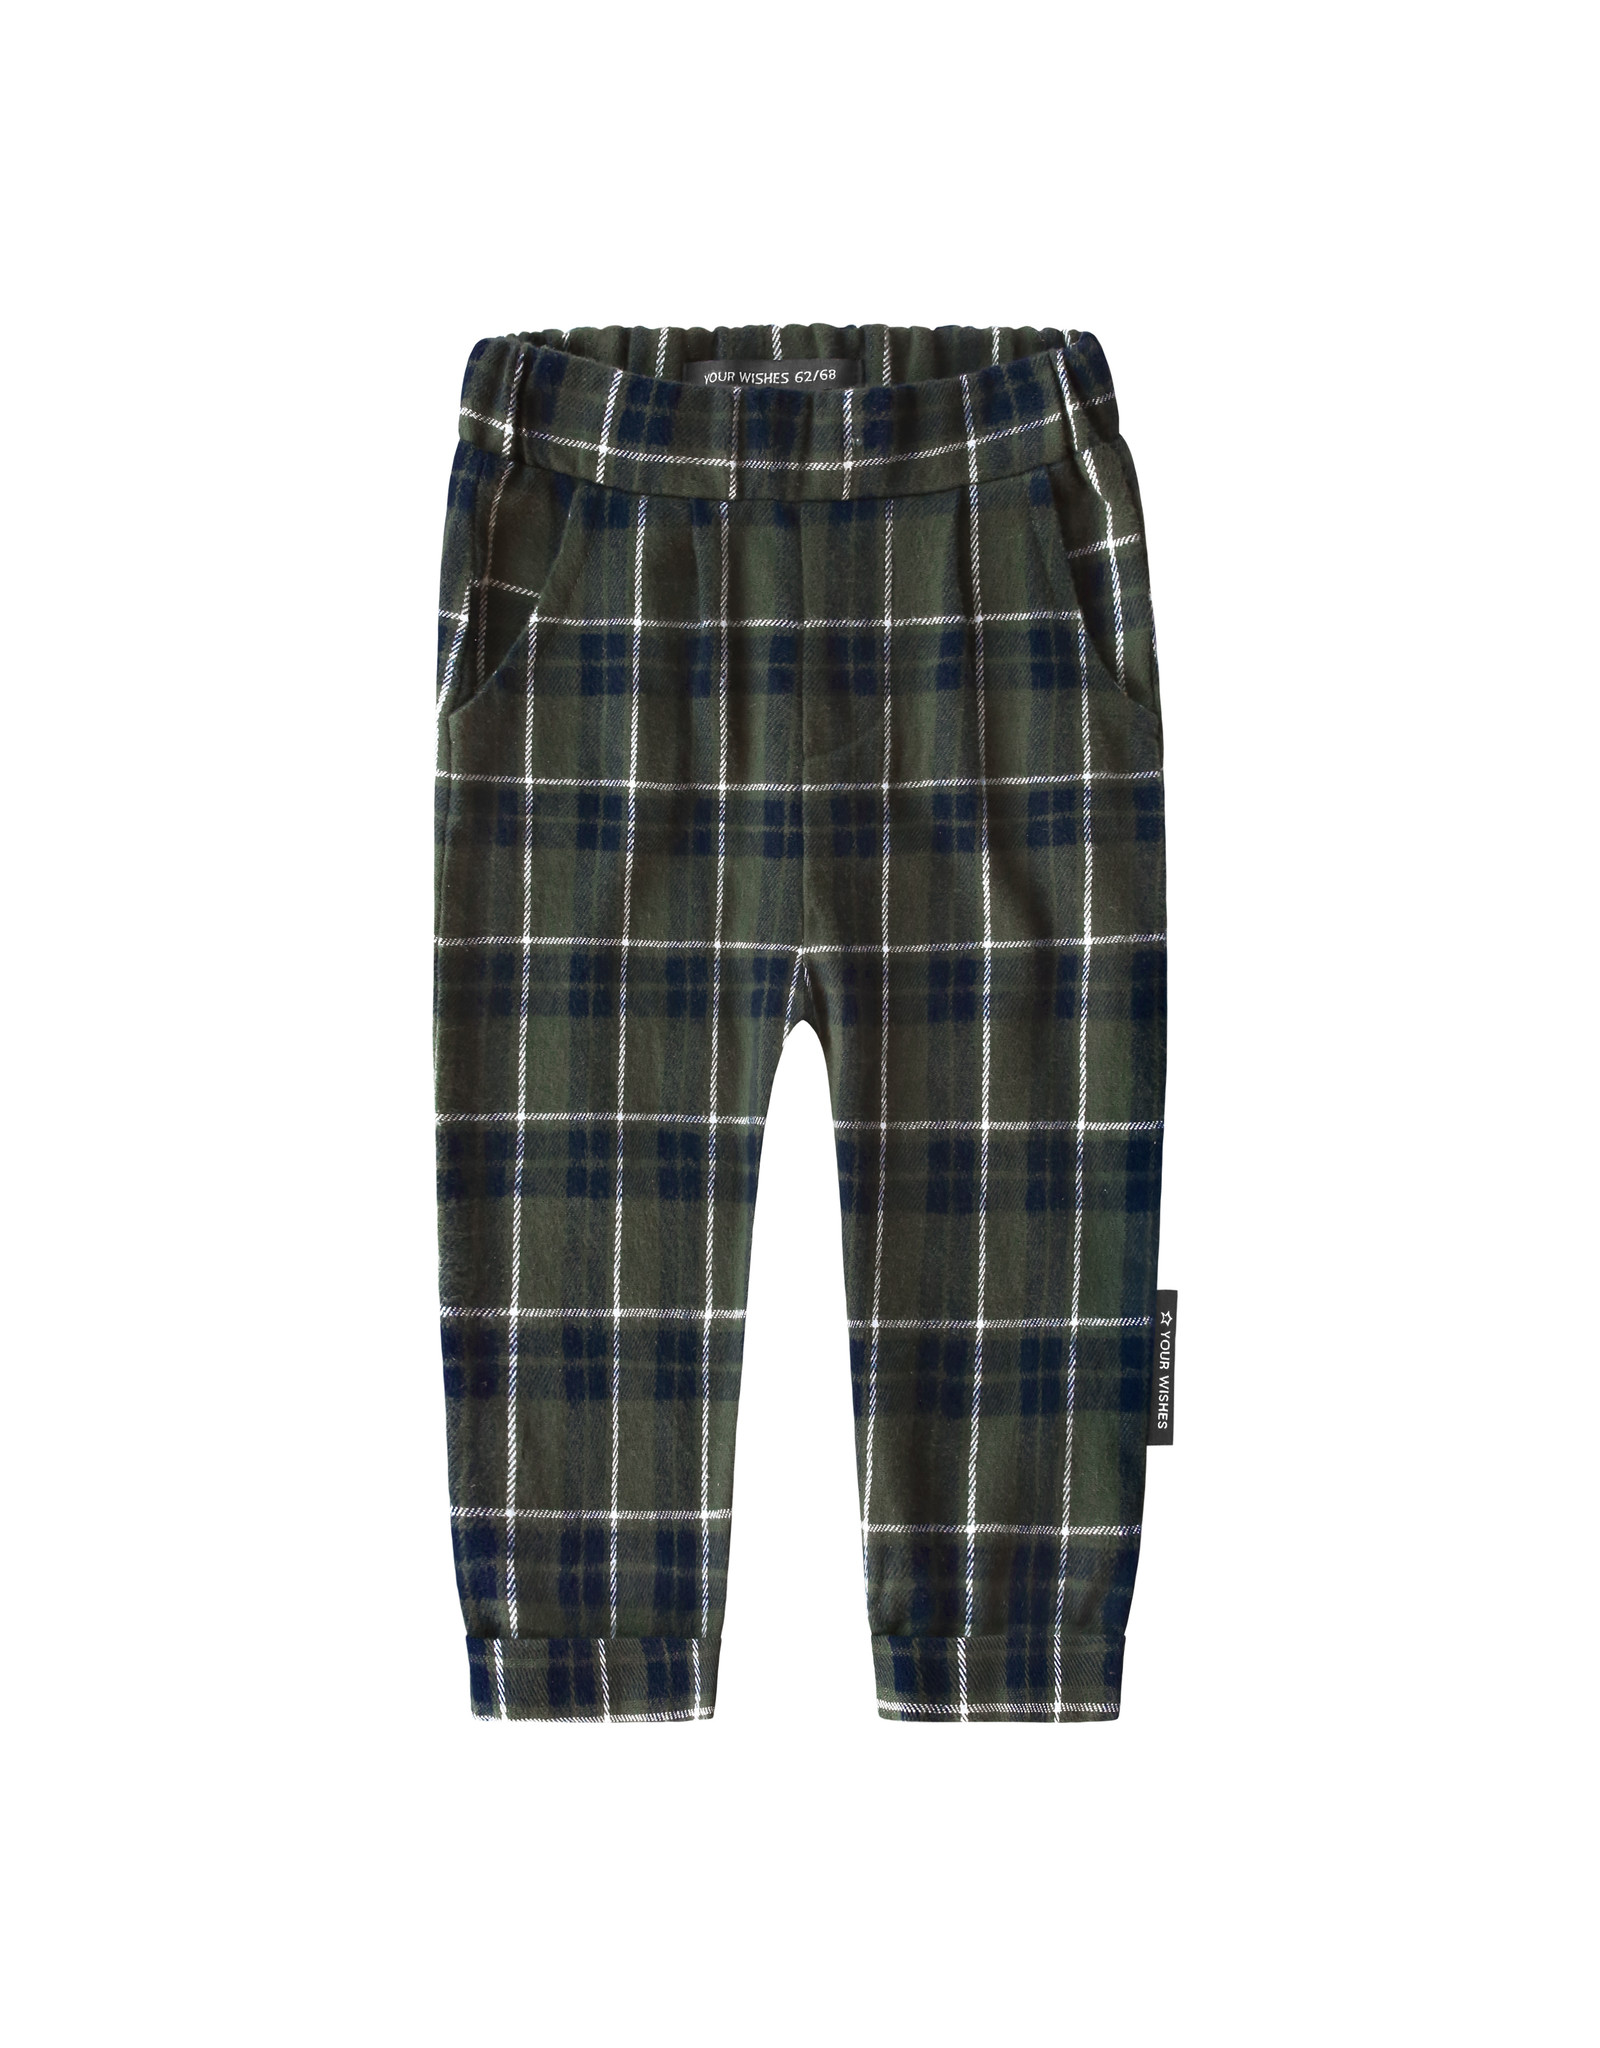 Your Wishes YW | Checks | Pleated Pants | Desk Green